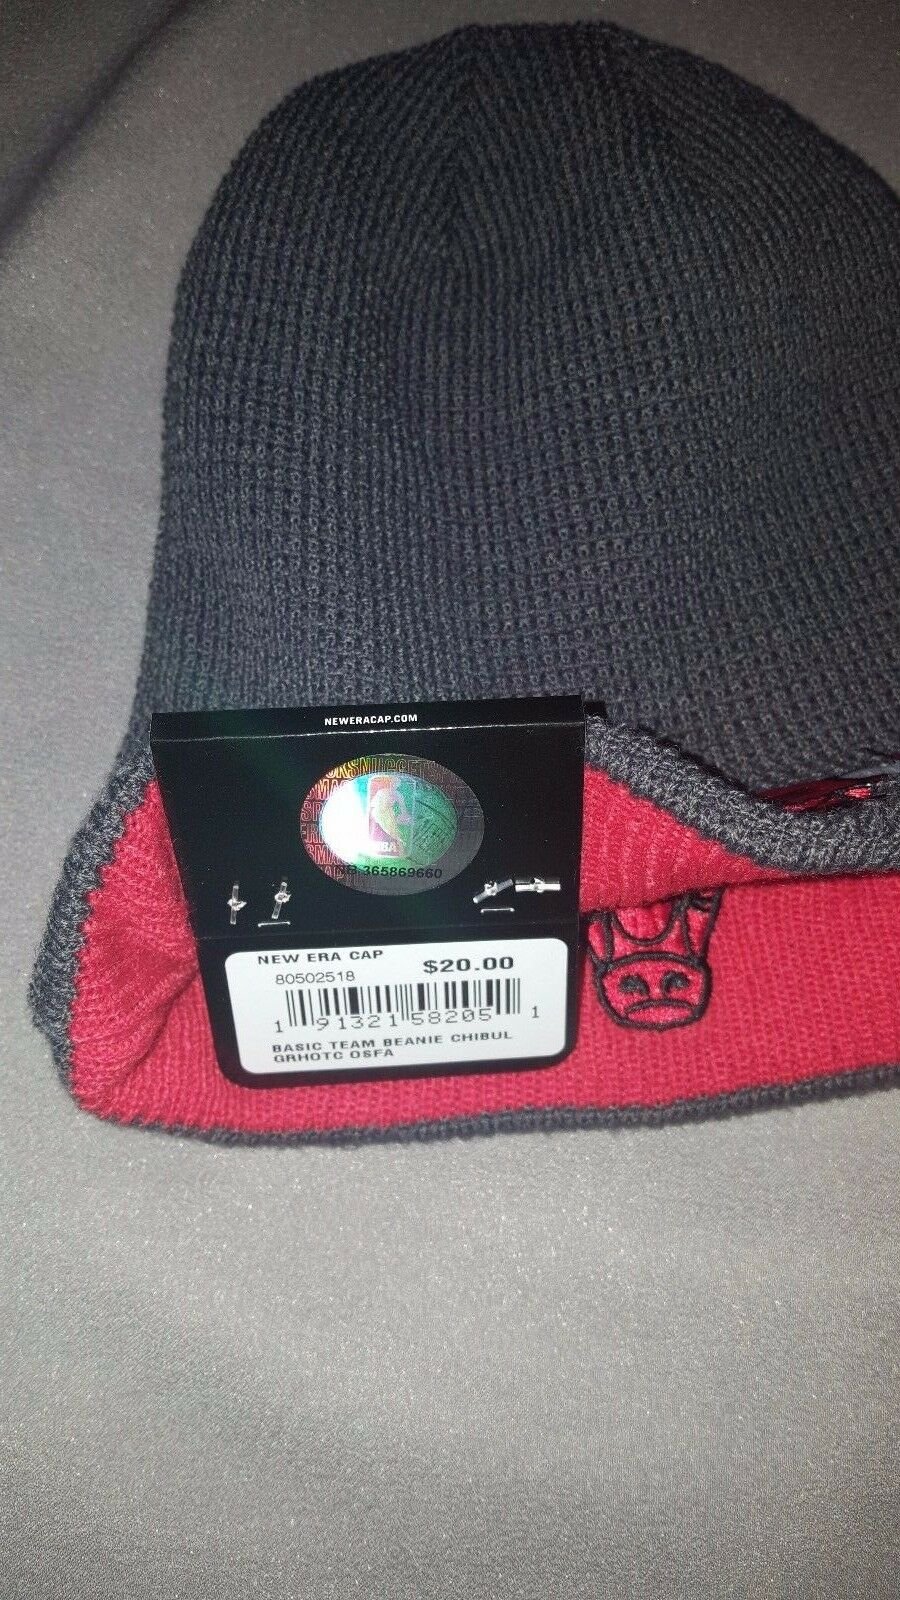 CHICAGO BULLS NEW ERA BASIC REVERSIBLE ADULT BEANIE MENS ADULT REVERSIBLE HAT GREY 80502518 NEW 0531a9